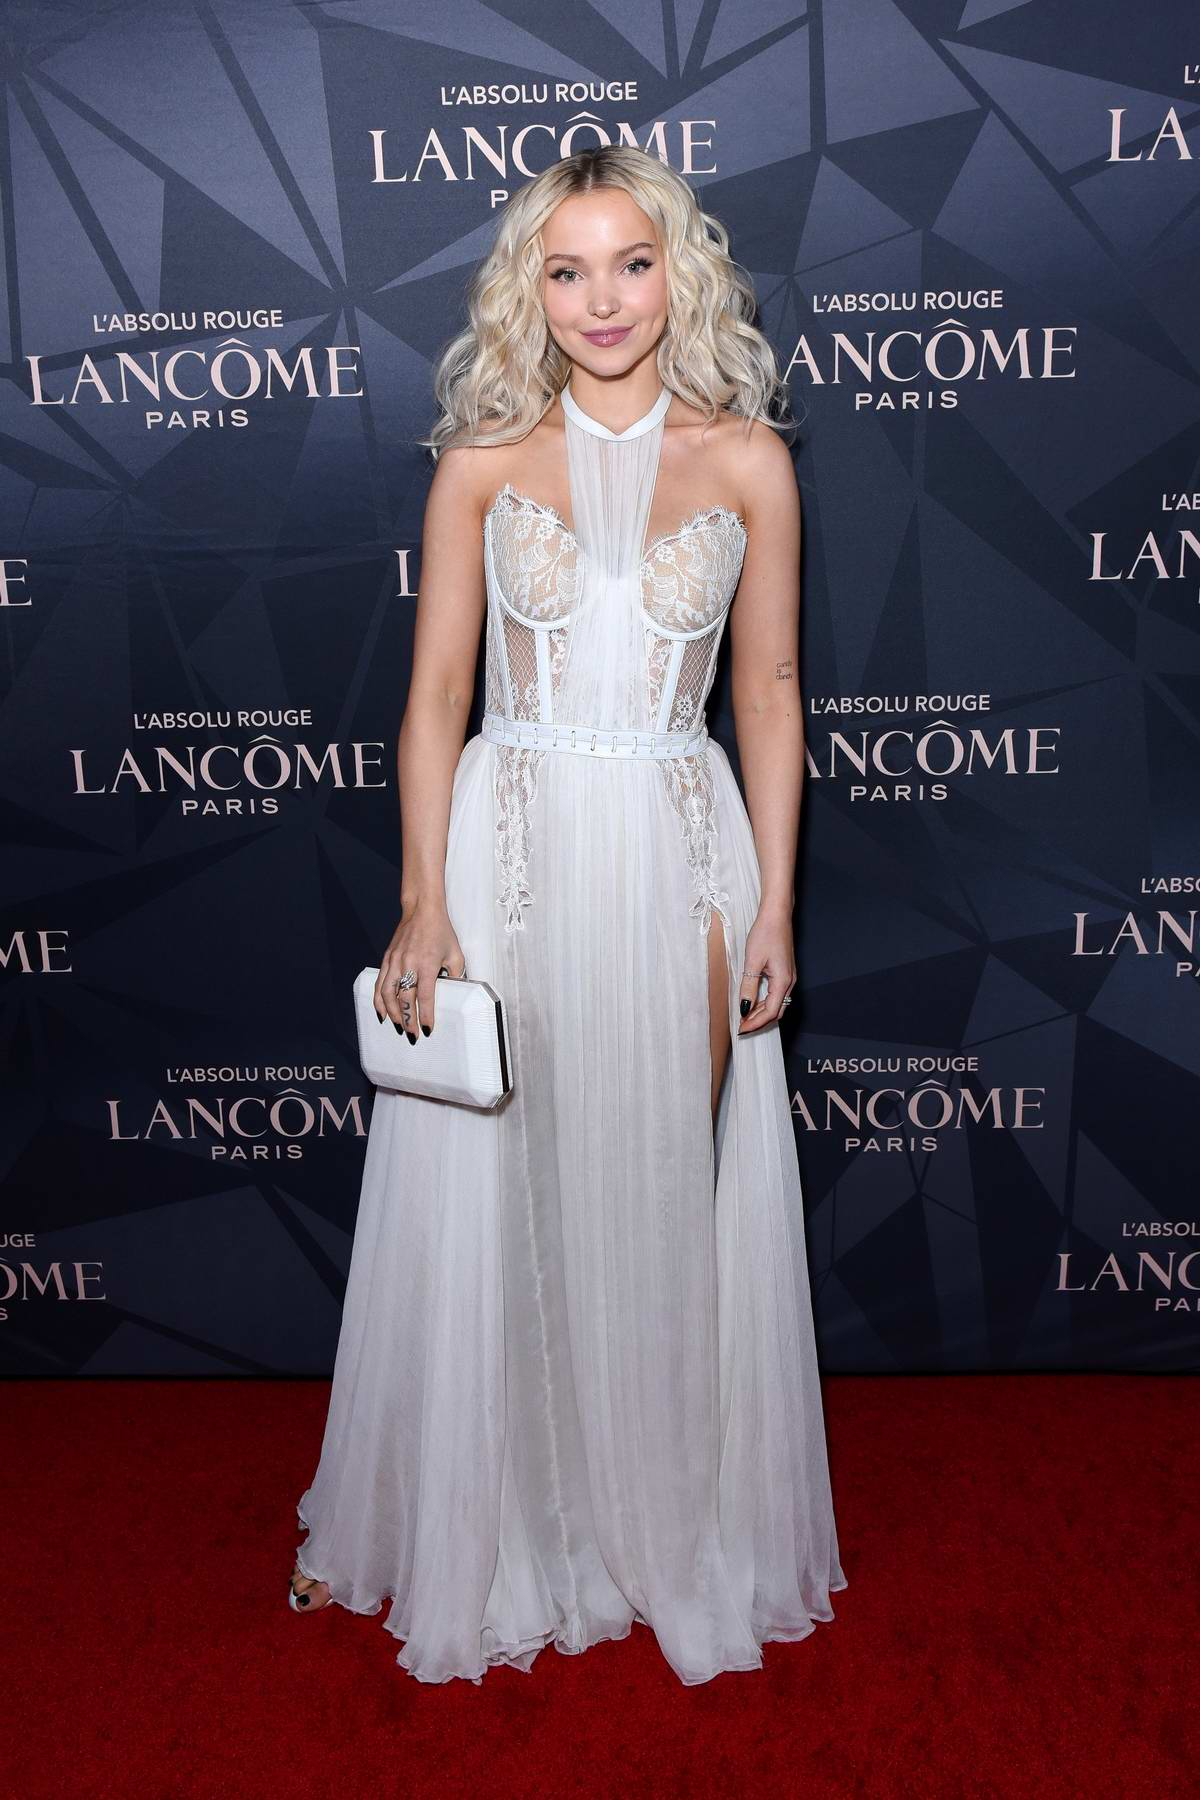 Dove Cameron attends Lancôme x Vogue L'Absolu Ruby Holiday Event at Raspoutine in West Hollywood, Los Angeles